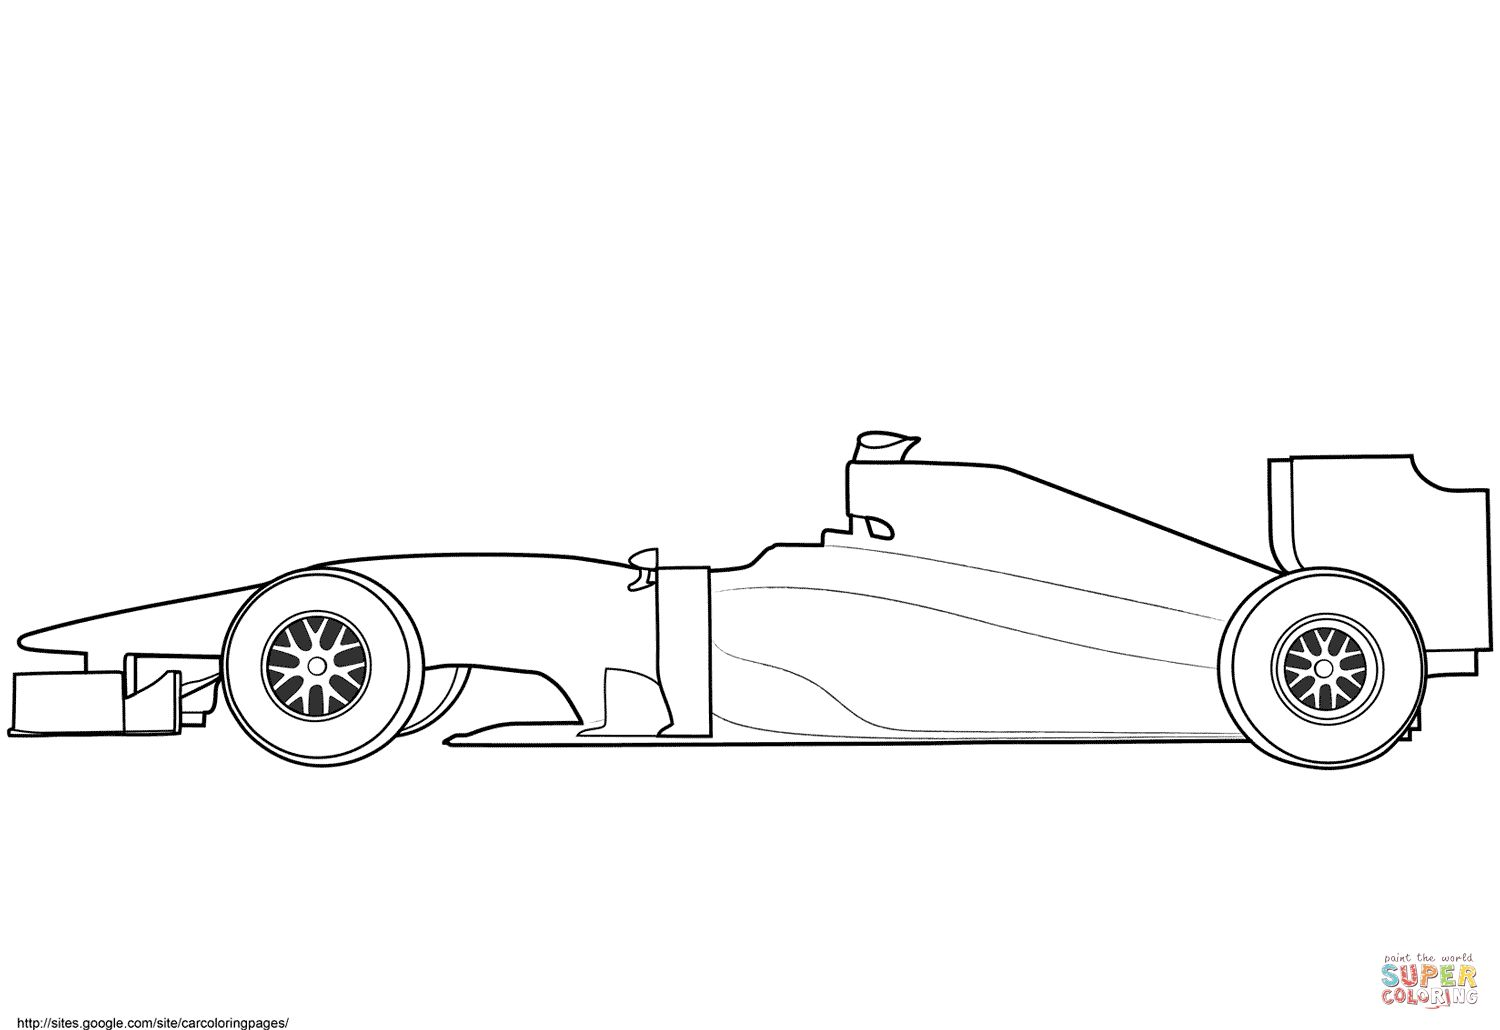 The Marvellous Blank Formula 1 Race Car Coloring Page Free Printable Throughout Blank Race Car Template Race Car Coloring Pages Cars Coloring Pages Race Cars